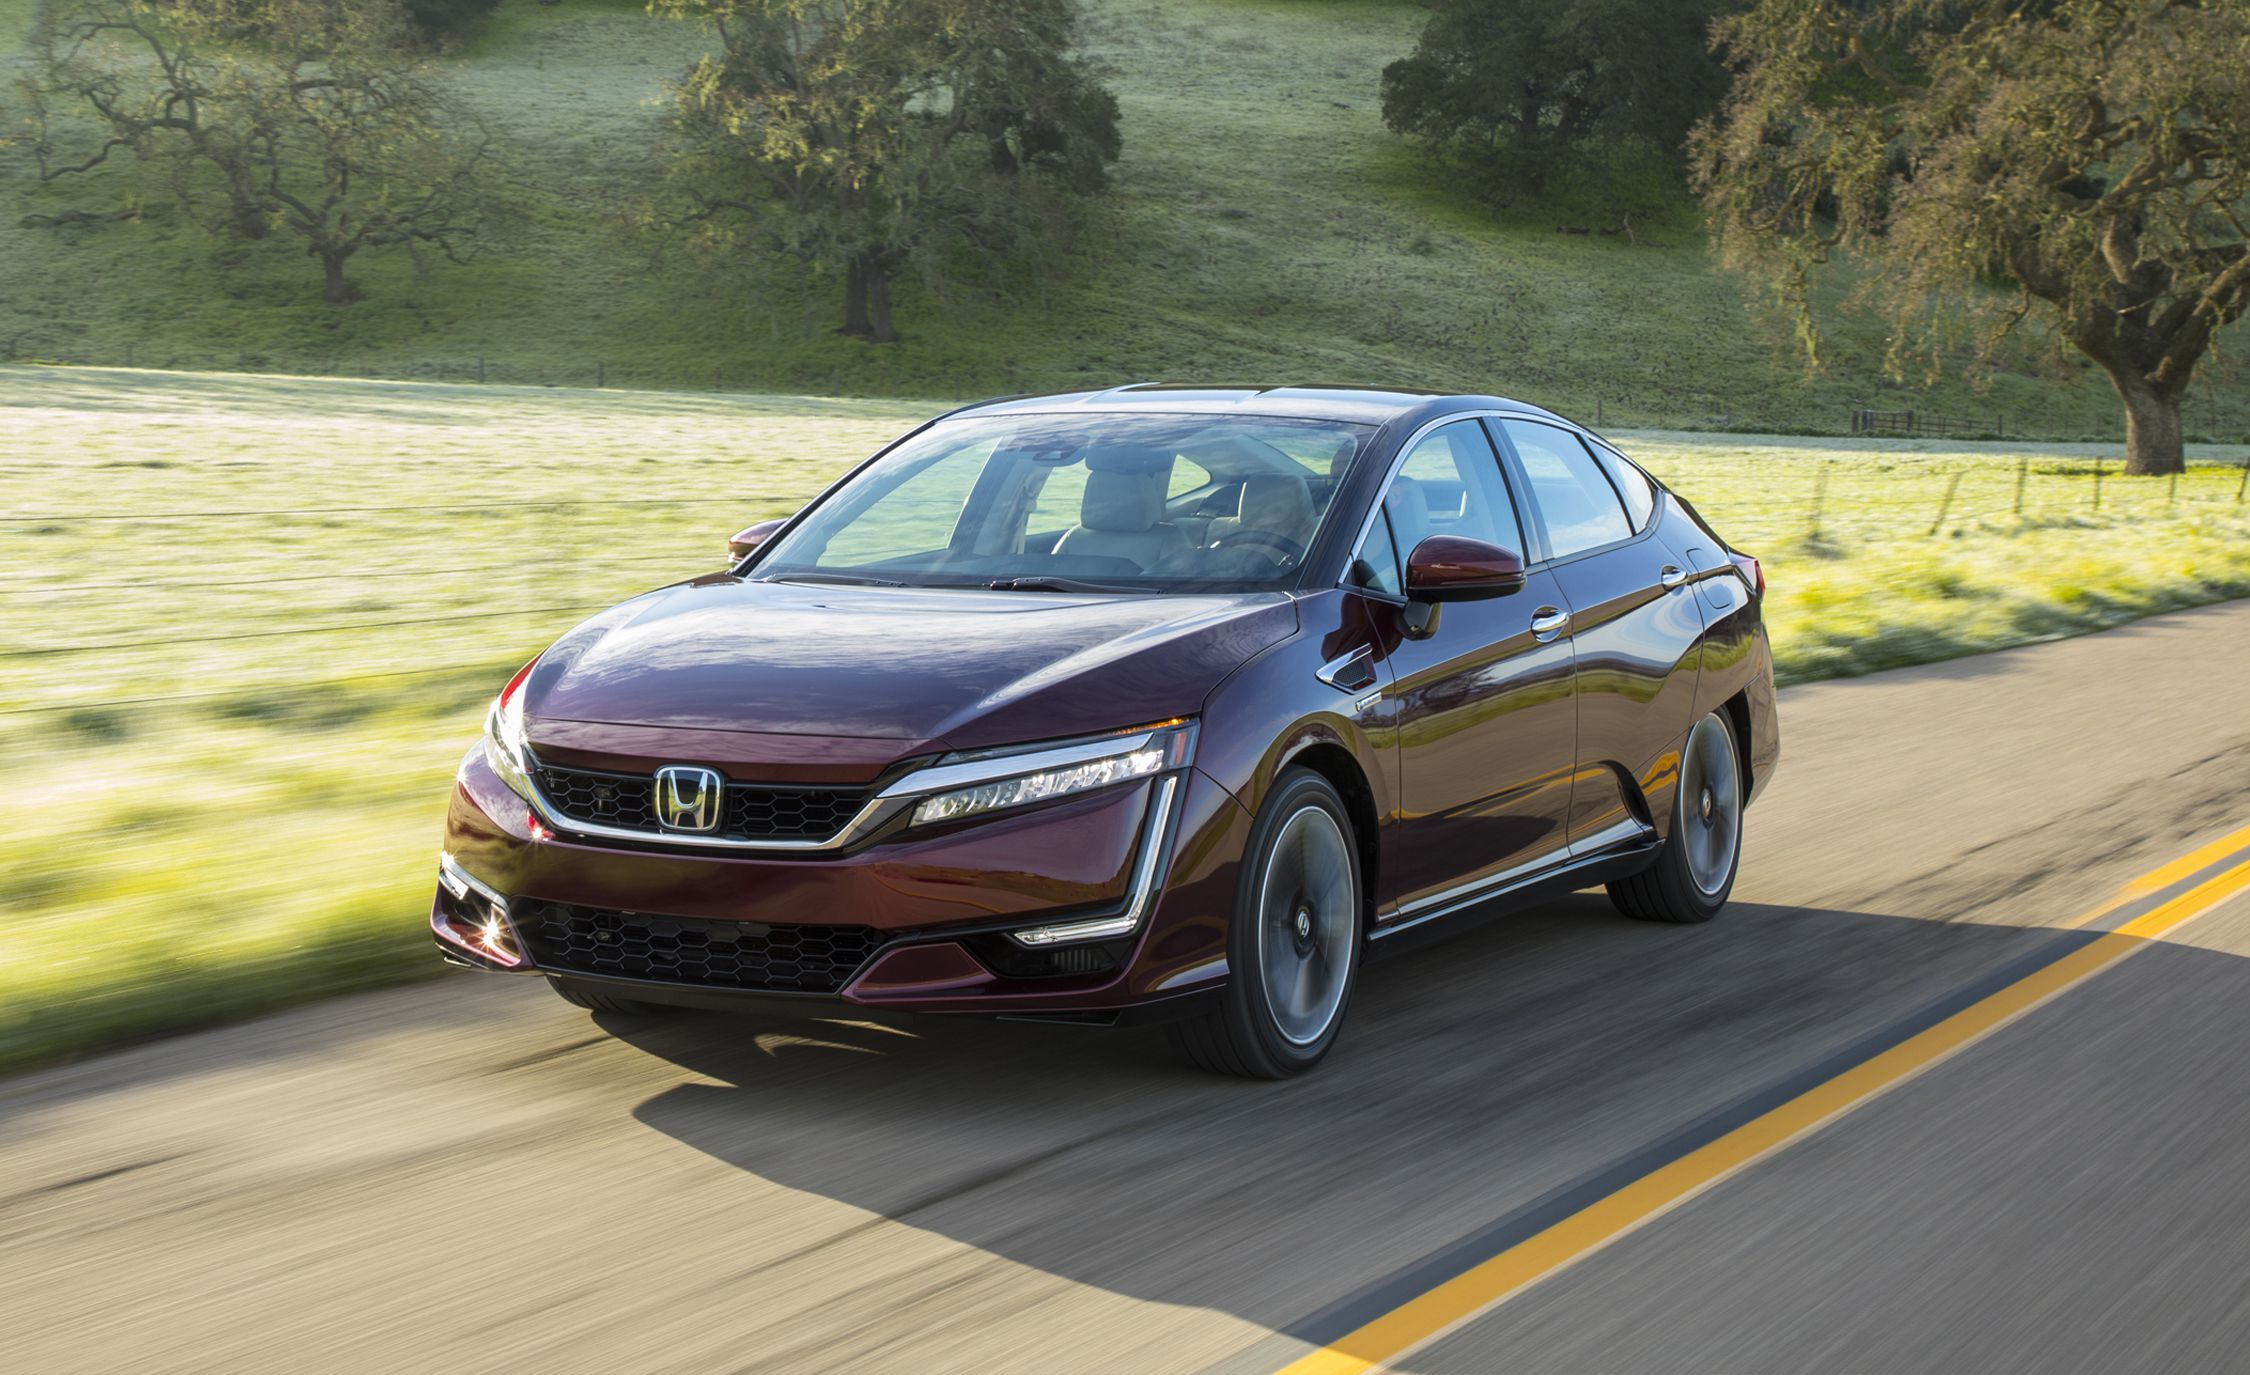 2017-honda-clarity-fuel-cell-first-drive-review-car-and-driver-photo-674728-s-original.jpg